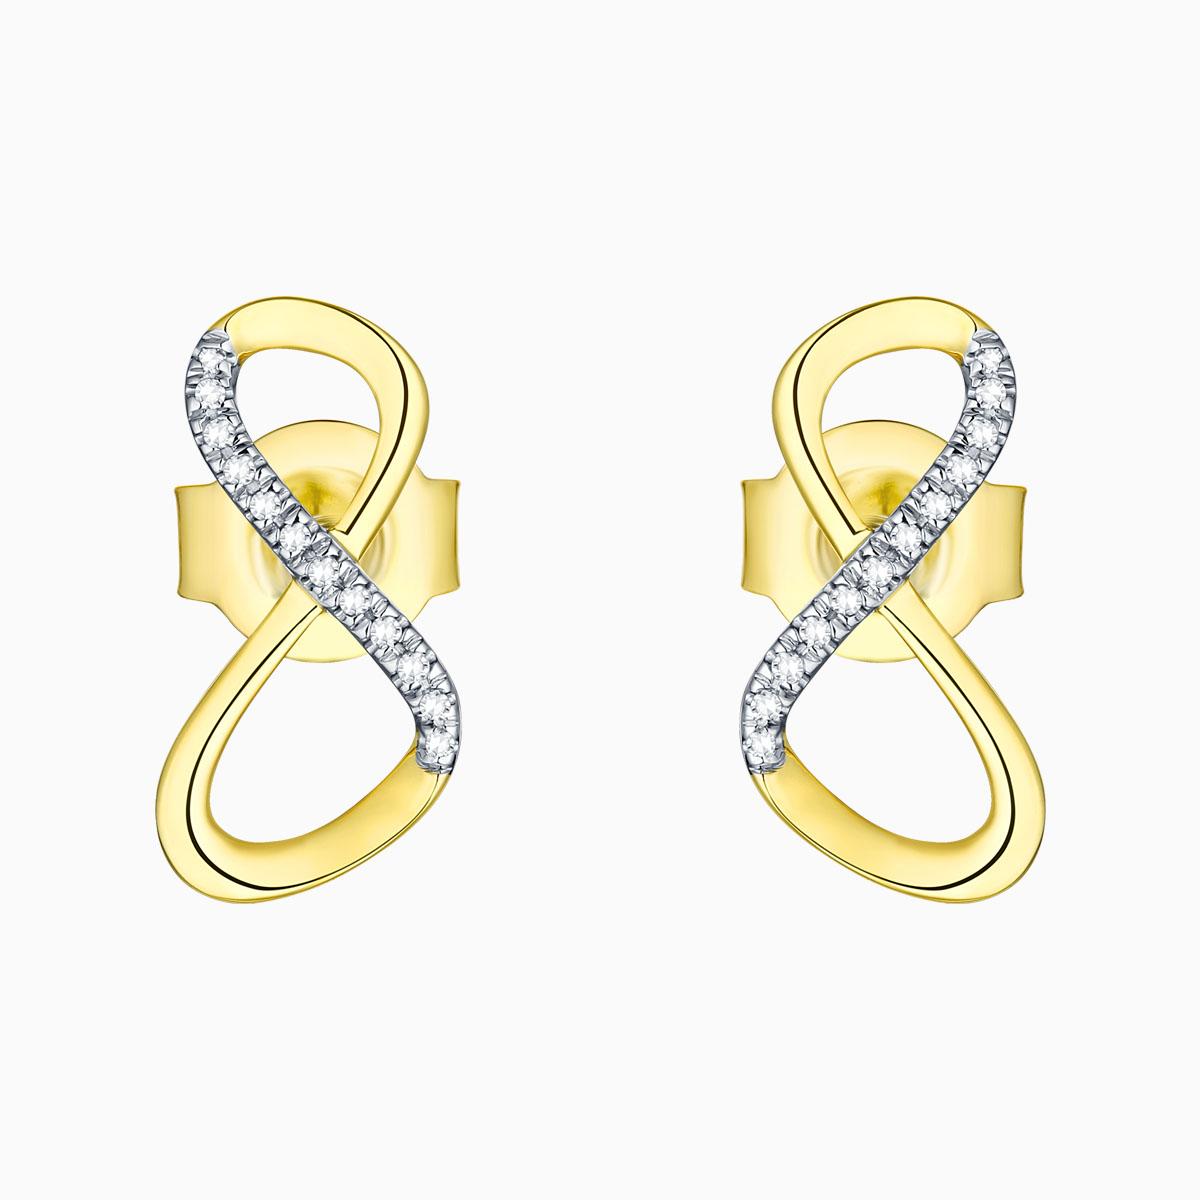 E13486WHT- 14K Yellow Gold Diamond Earrings, 0.04 TCW